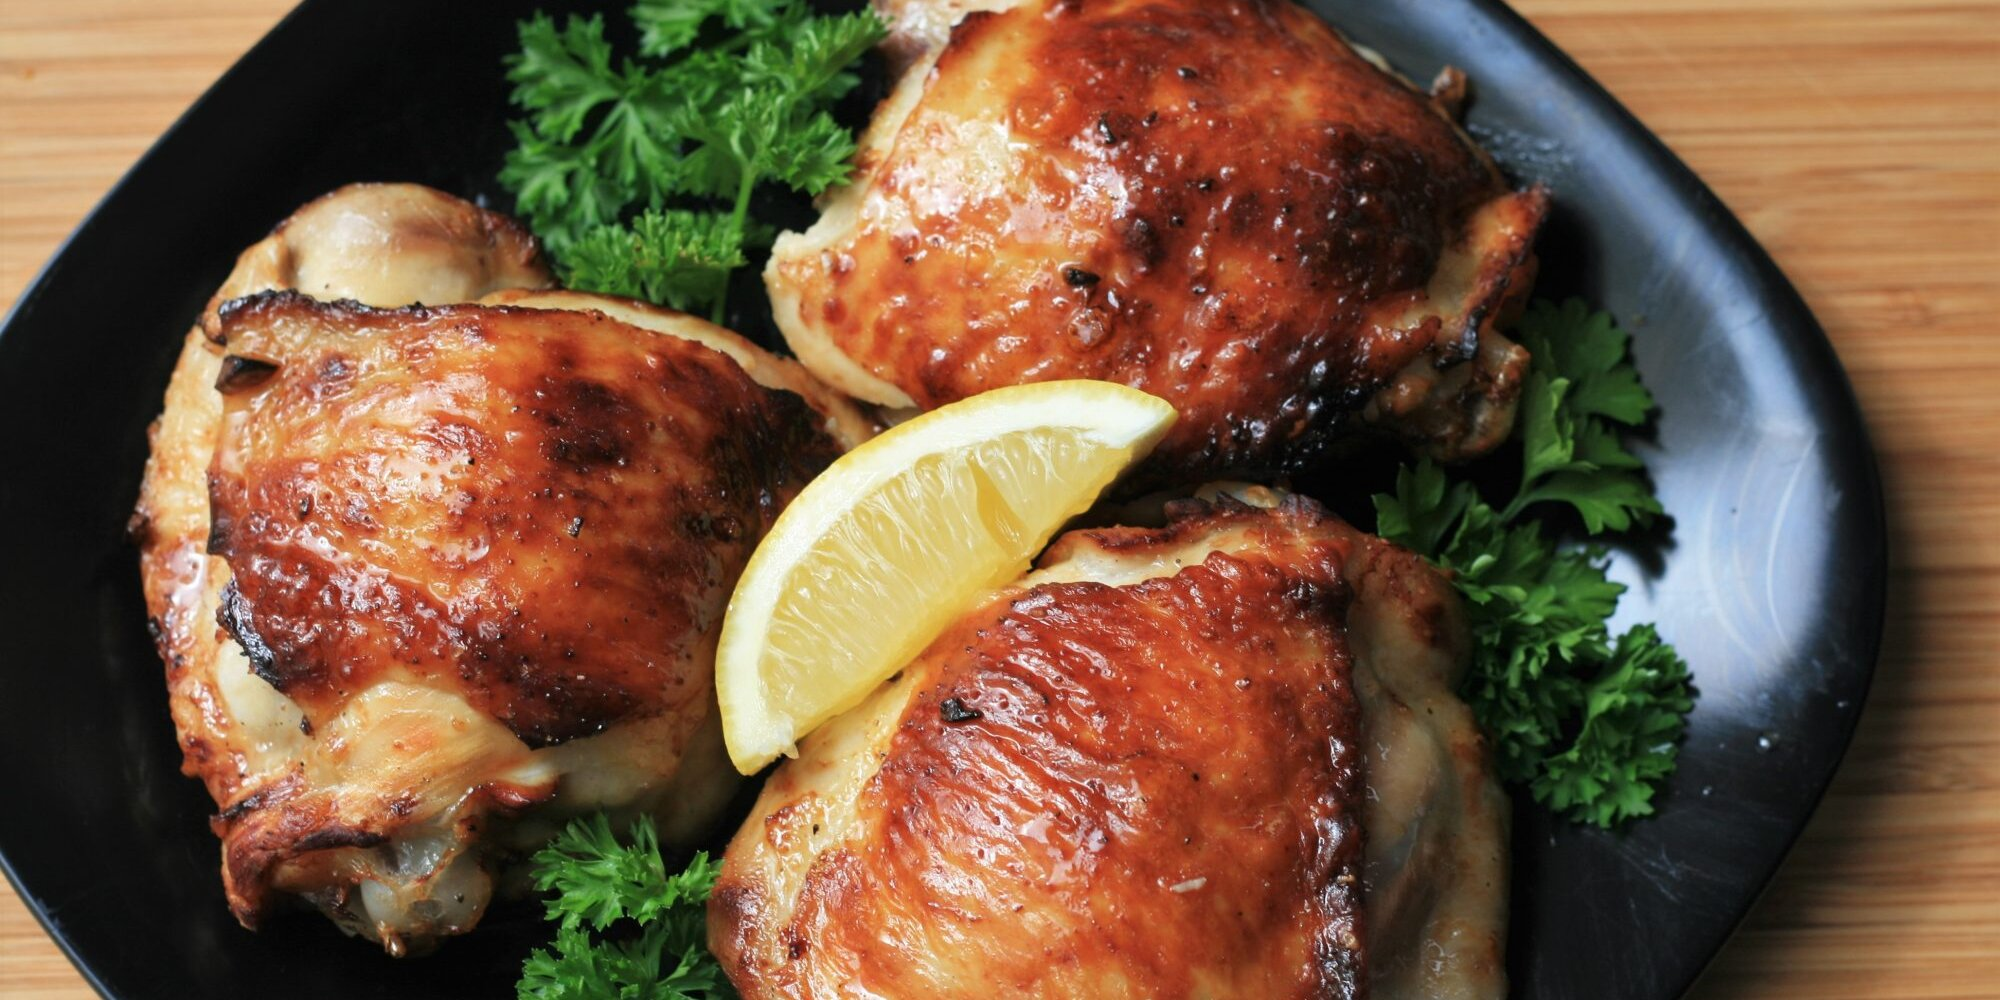 10 Air Fryer Chicken Thigh Recipes to Make for Dinner Tonight